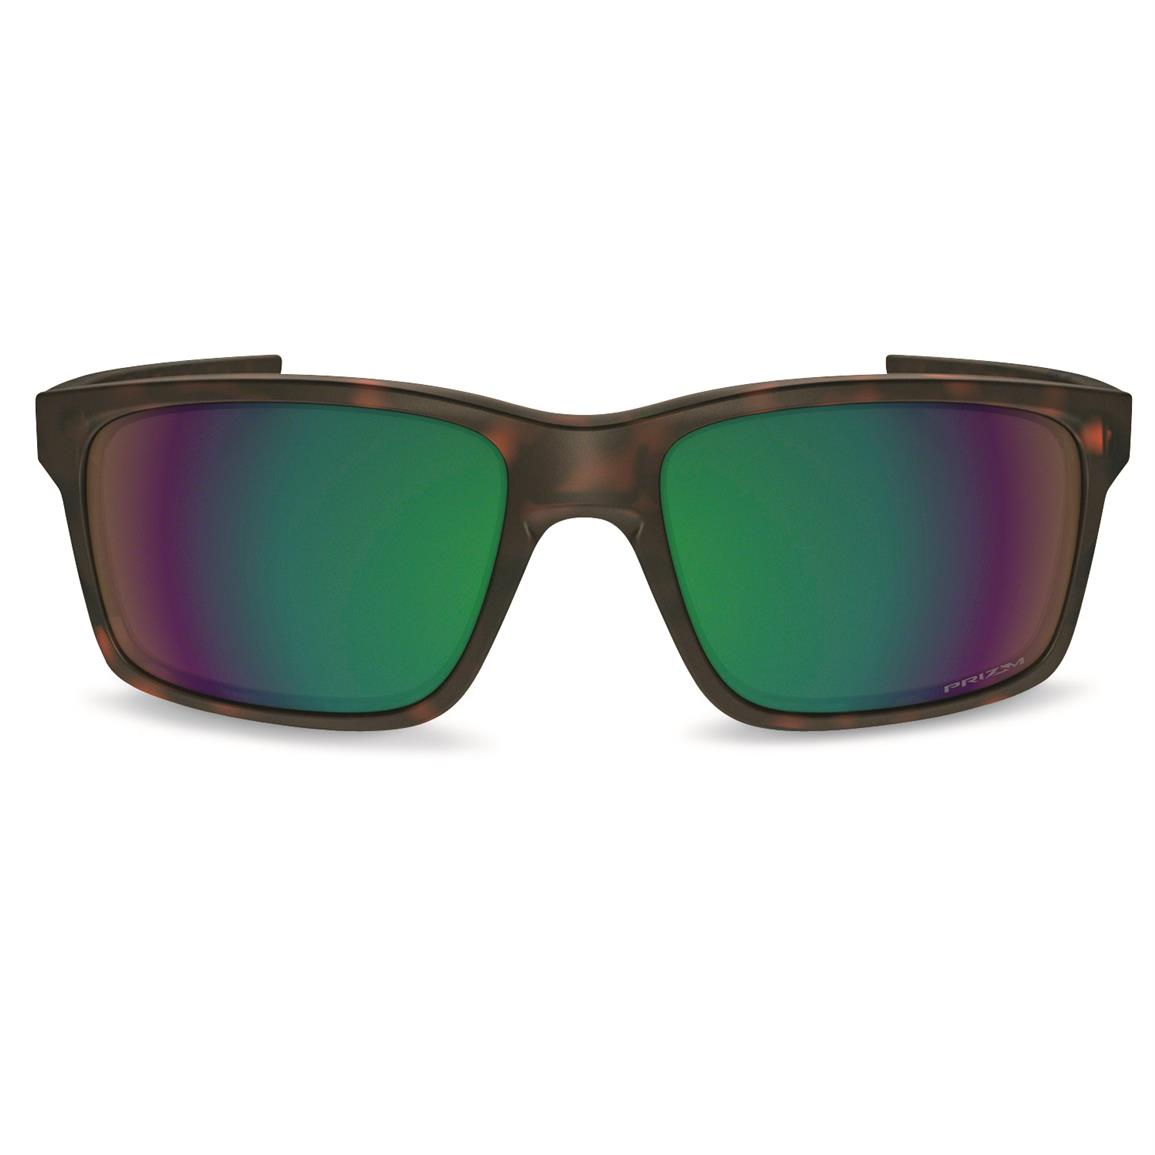 Polarized: maximizes contrast, enhances visibility